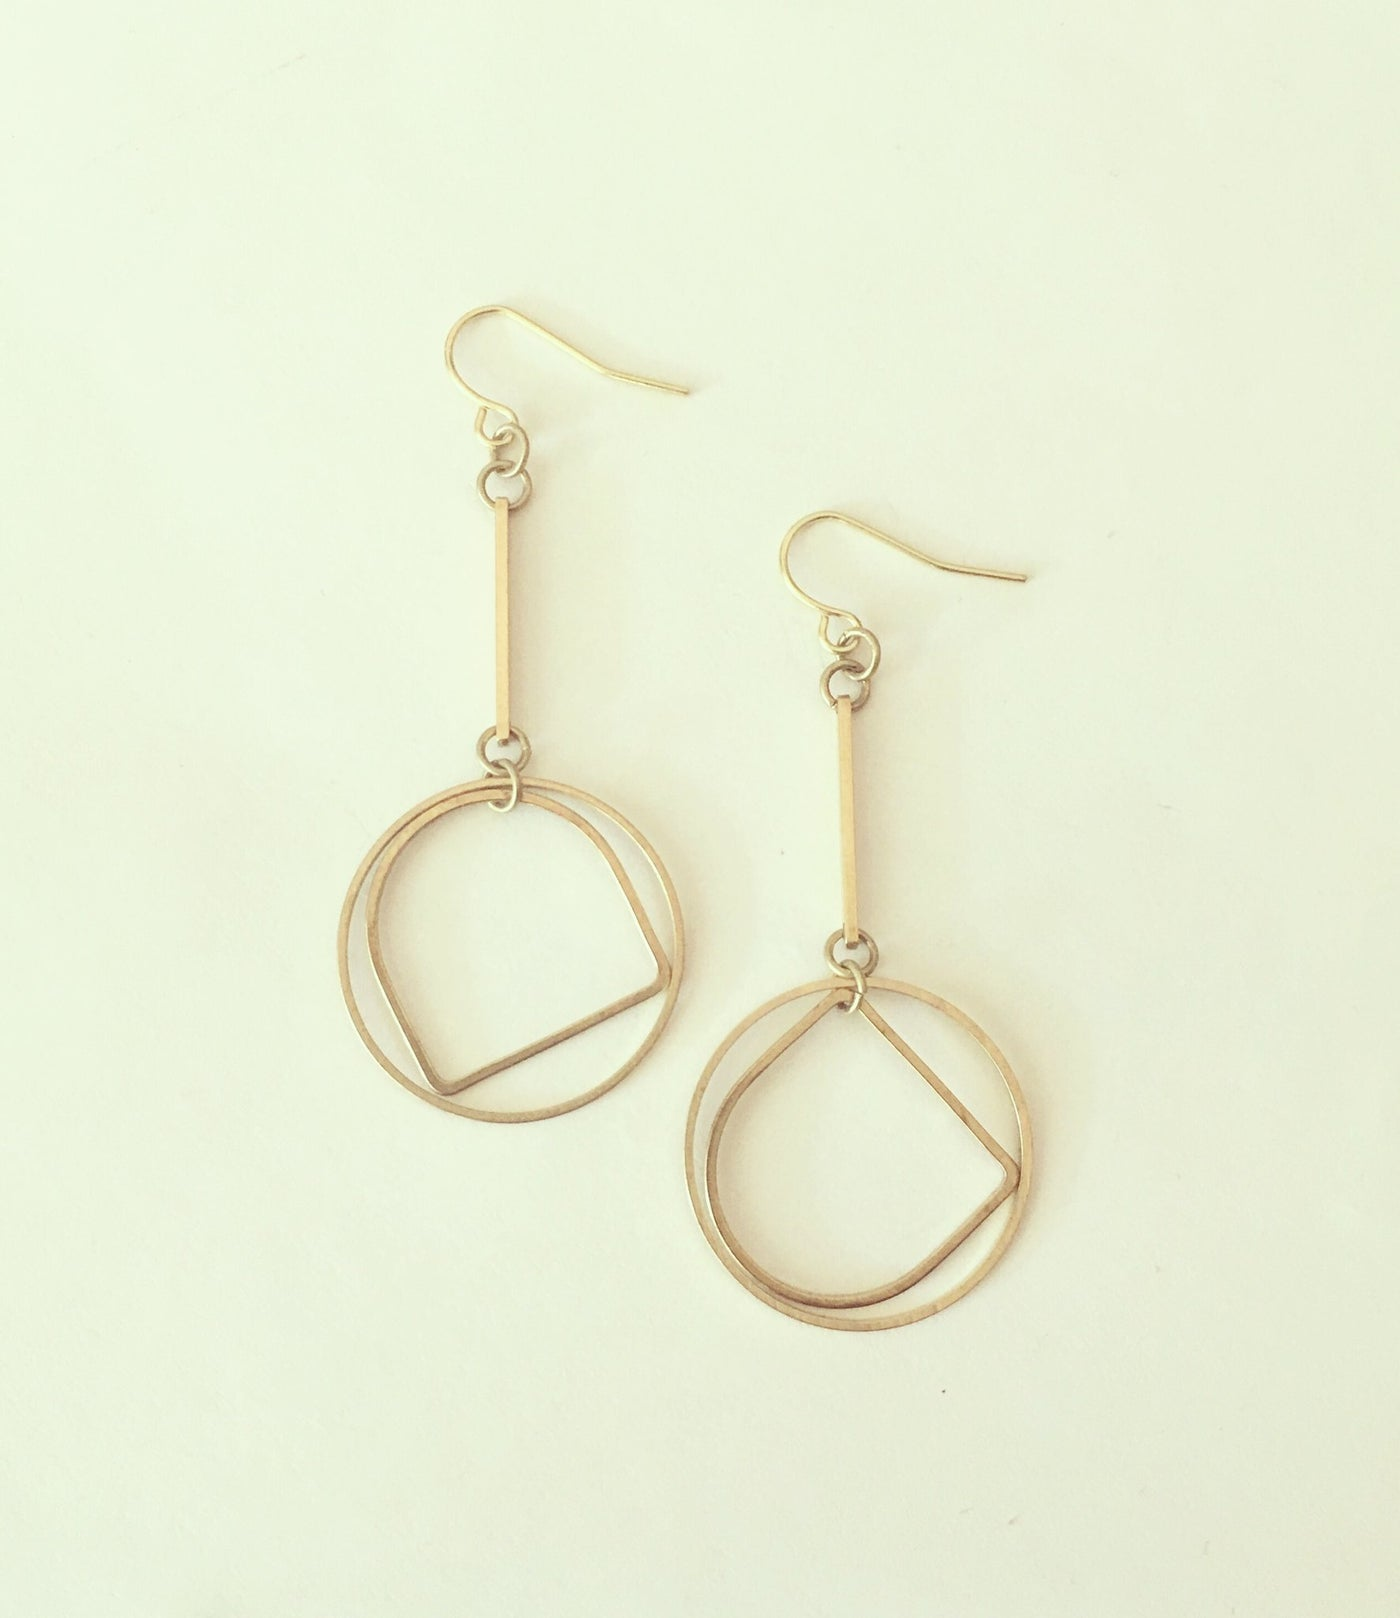 Boucles d'oreilles Juupe - Darlings of Denmark